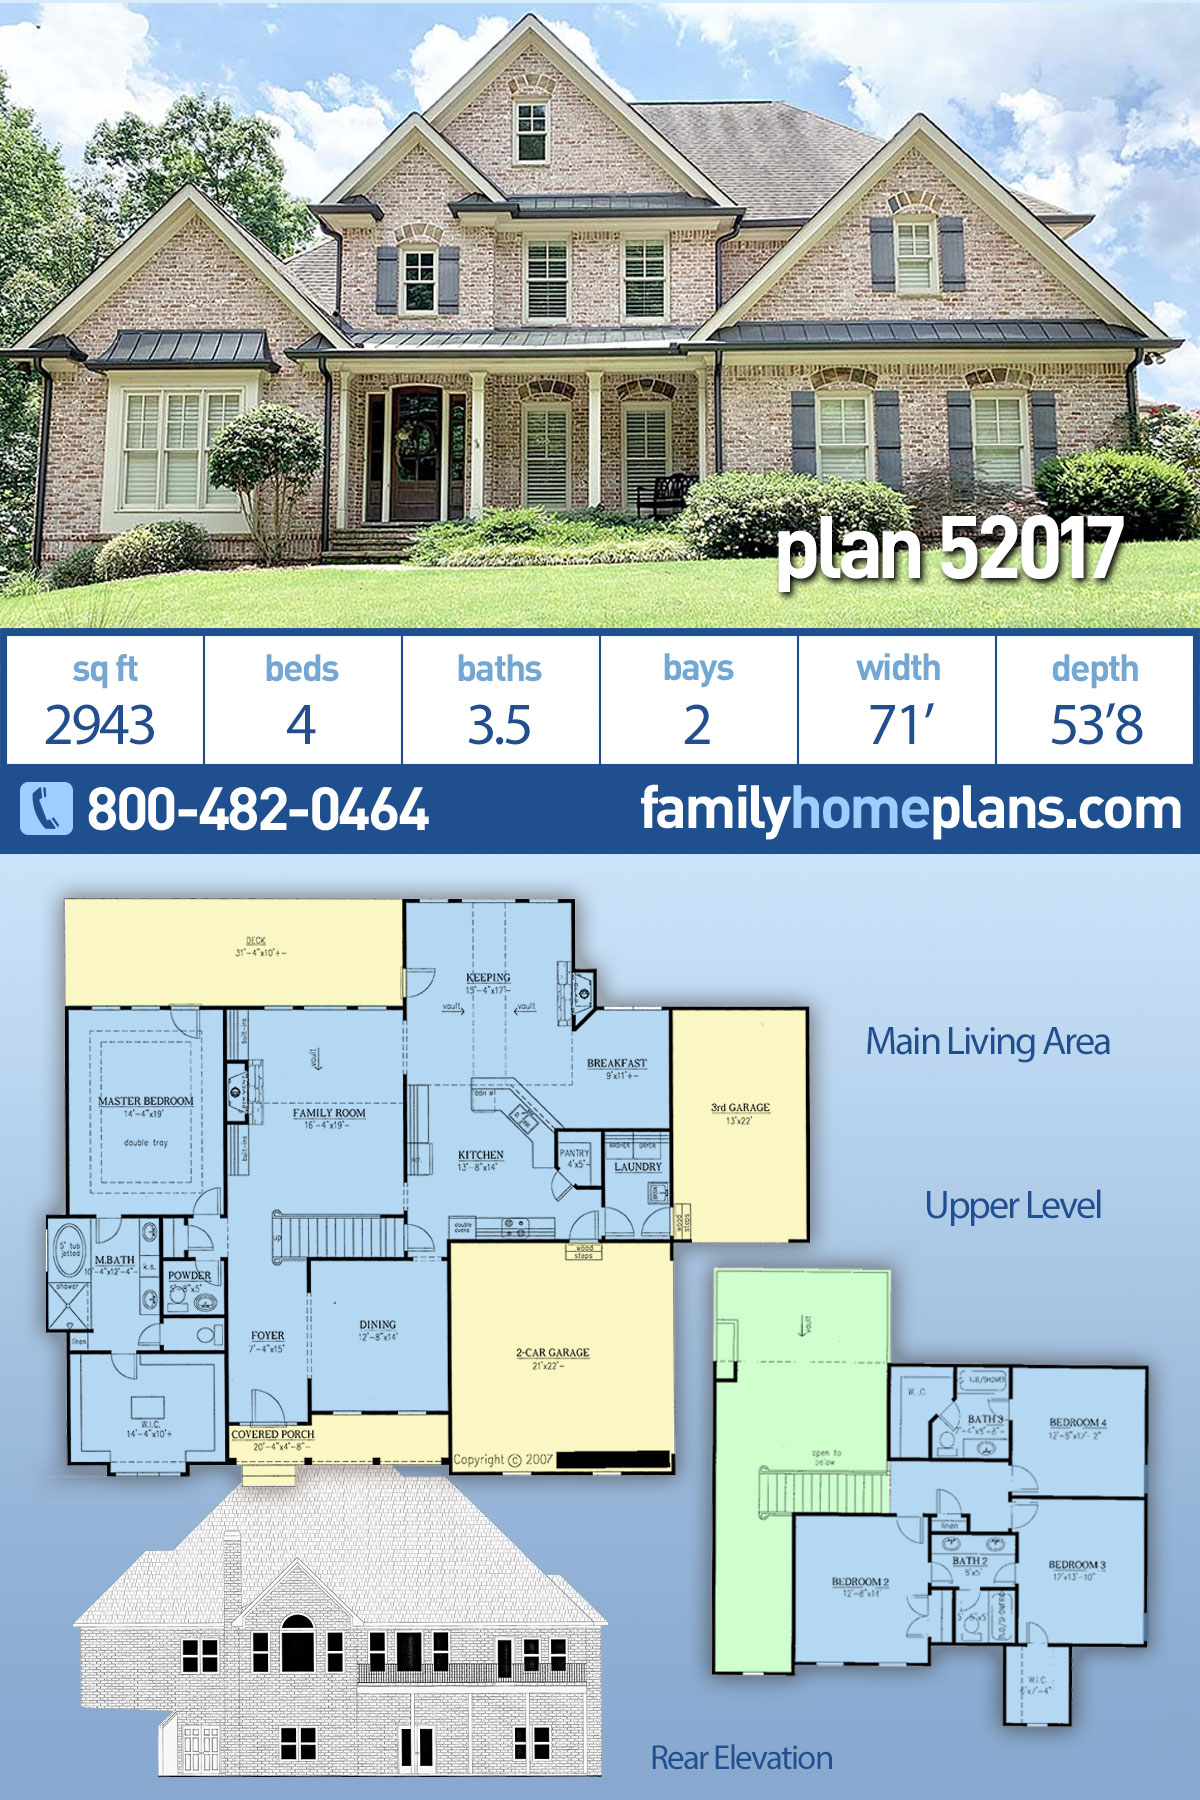 Traditional House Plan 52017 with 4 Beds , 4 Baths , 2 Car Garage